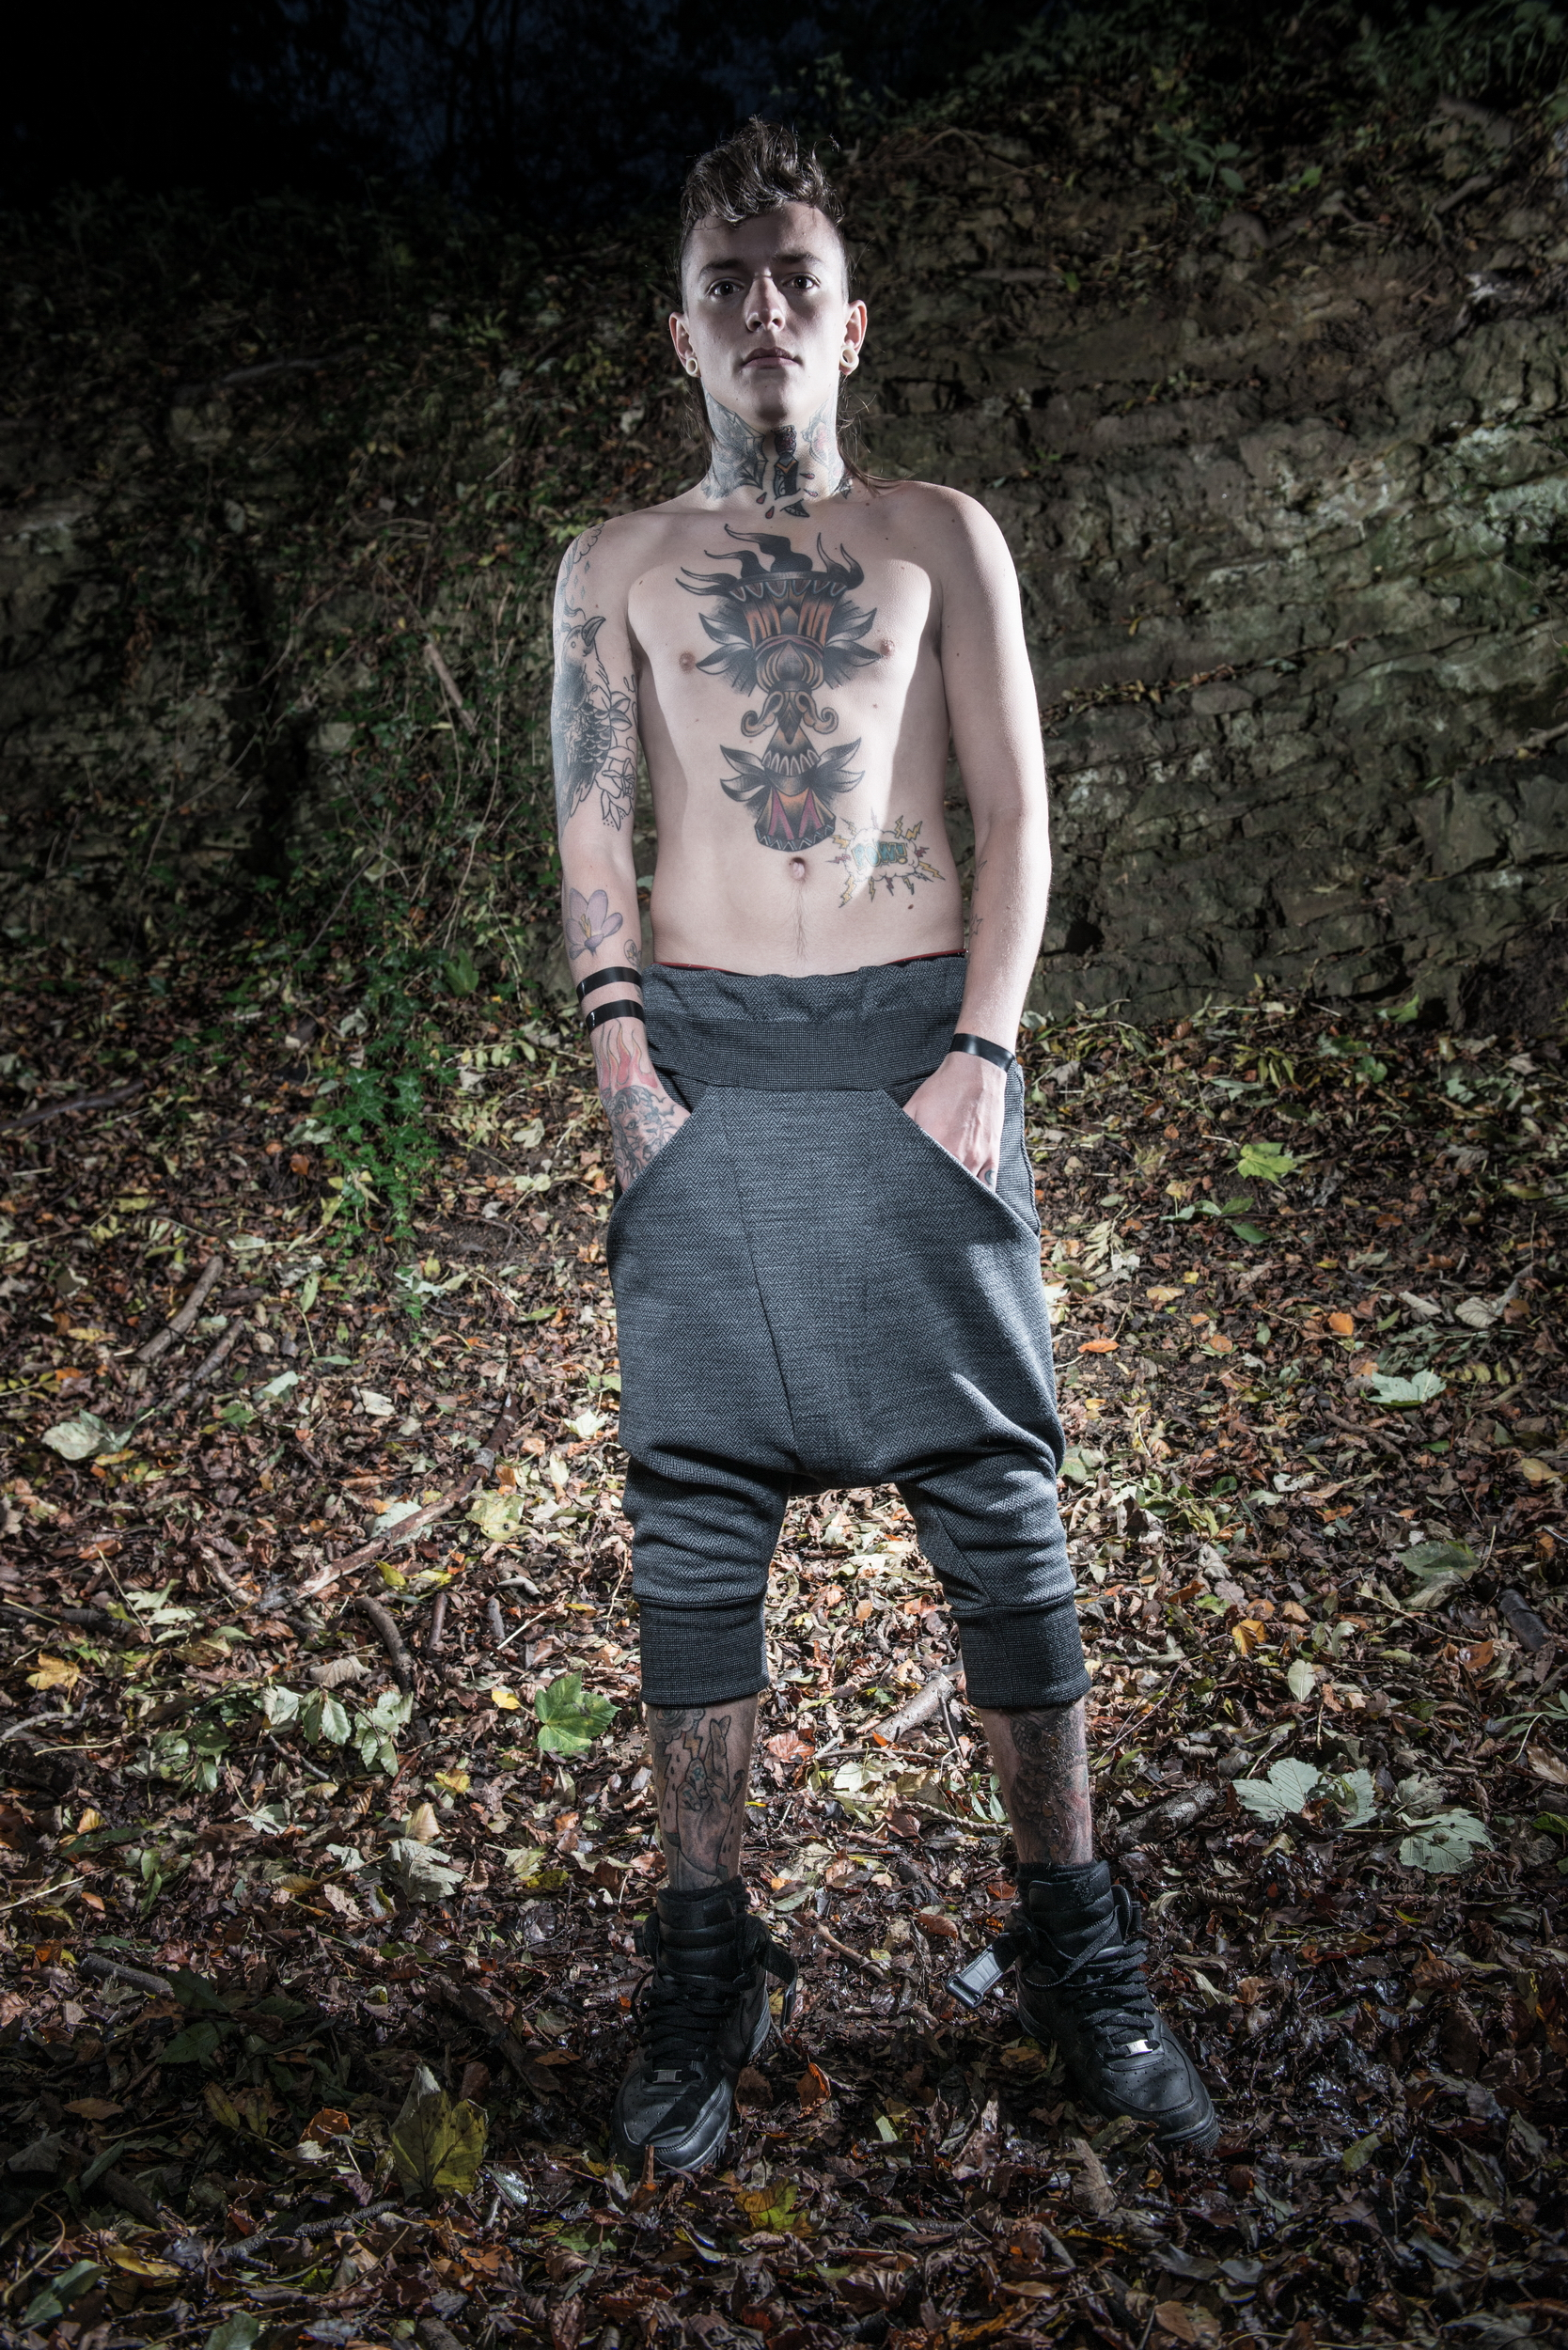 zaramia-ava-zaramiaava-leeds-fashion-designer-ethical-sustainable-tailored-minimalist-versatile-drape-grey-shirt-vest-top-denim-trousers-black-grey-texture-styling-menswear-model-photoshoot-location-8